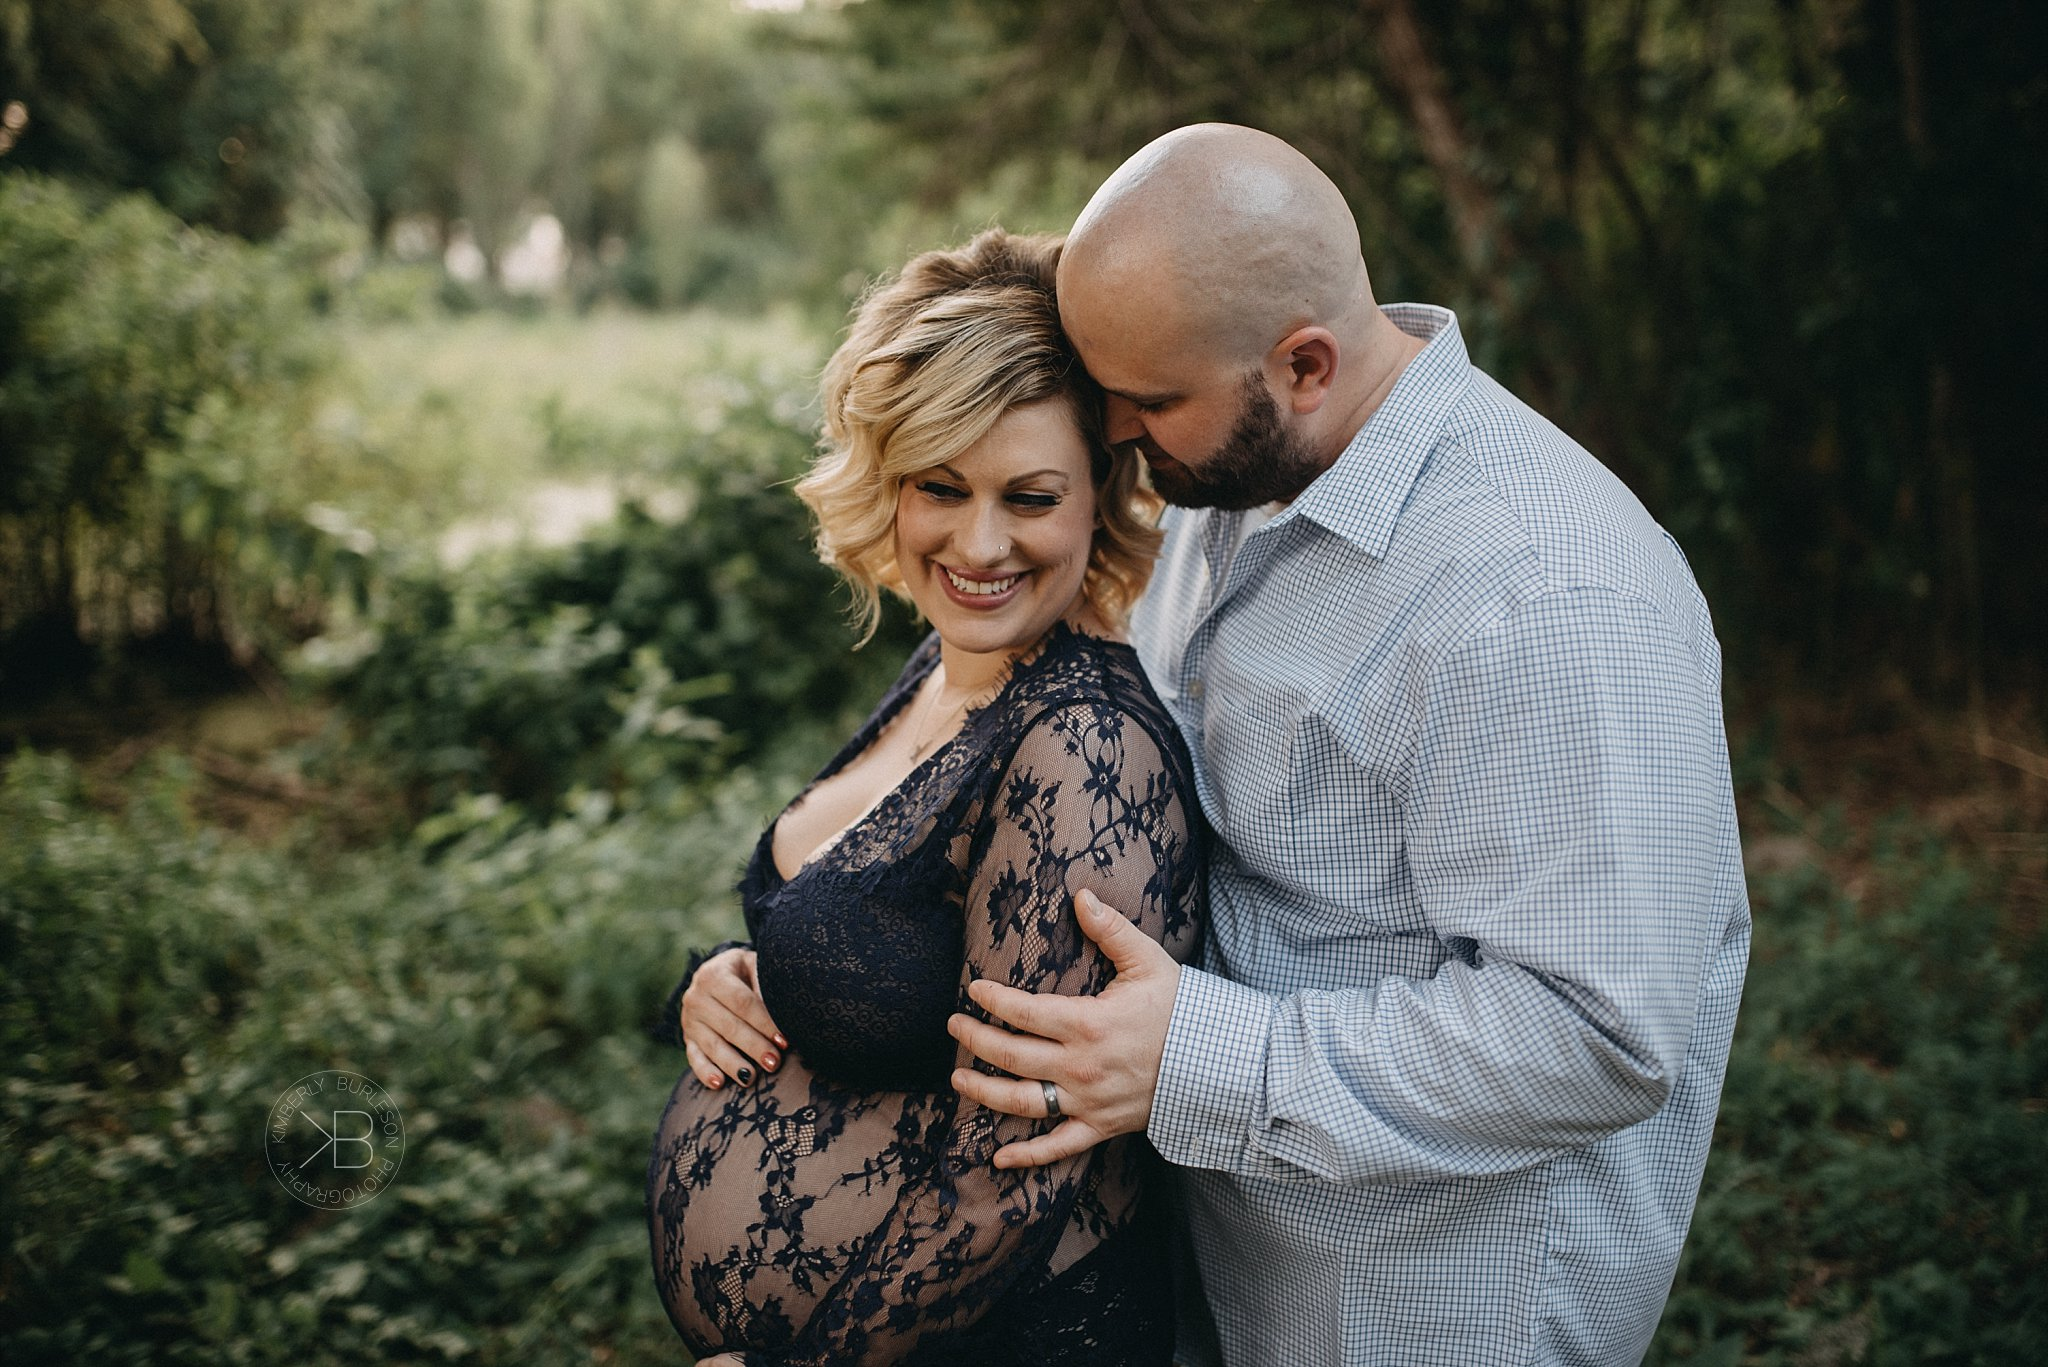 Best Houston maternity photographer 2018